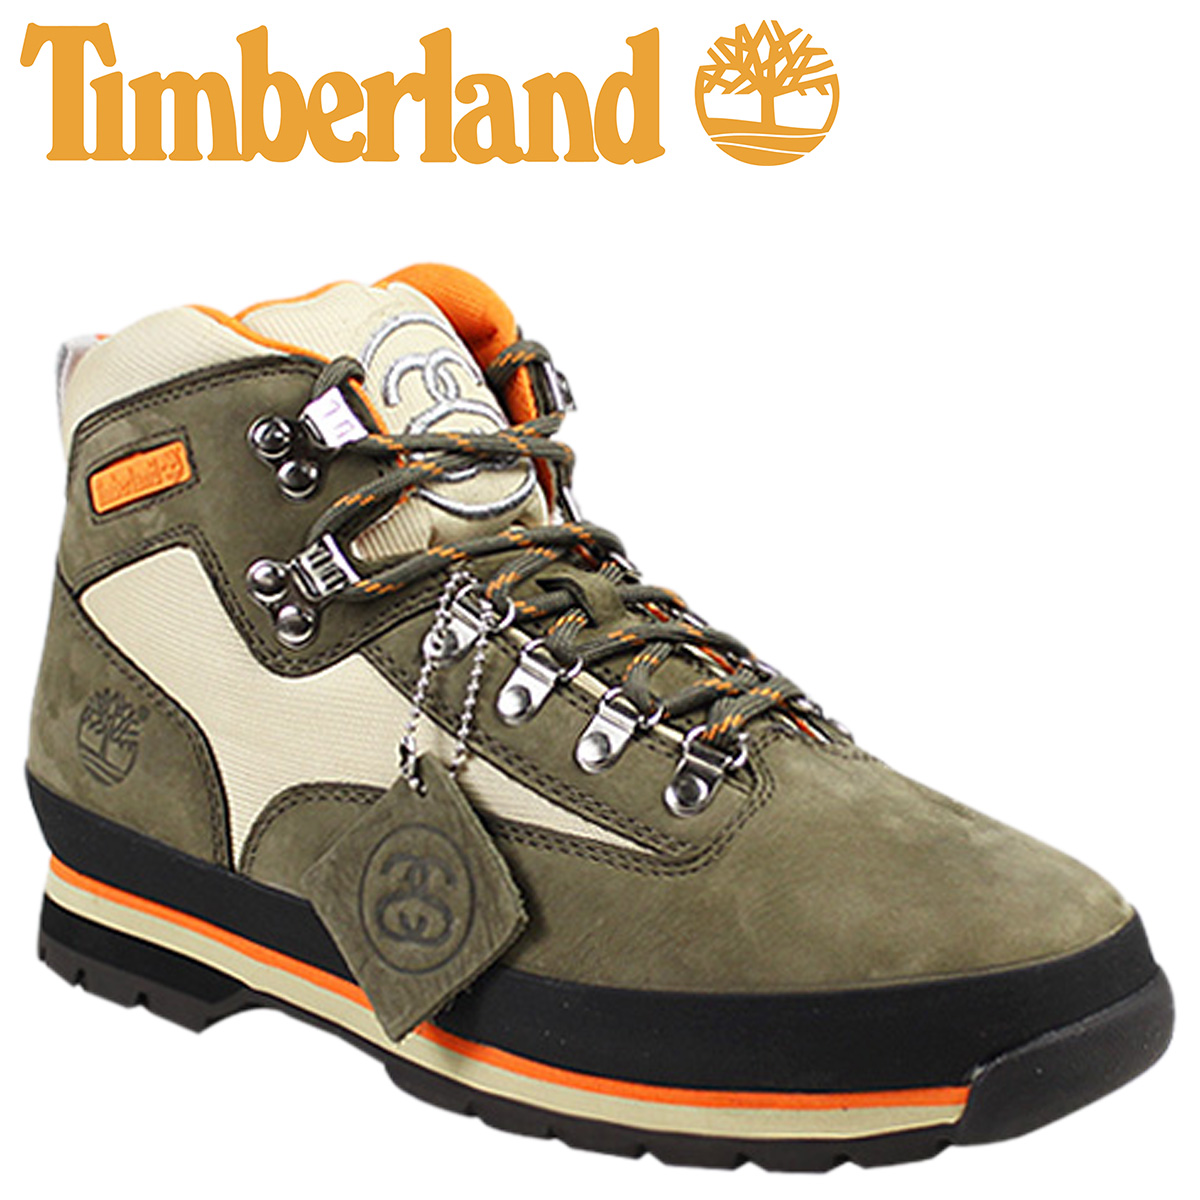 3f5414b771a [SOLD OUT] Timberland STUSSY Timberland euro hiker boots EURO HIKER BOOT  nubuck men's collaboration with W name 6238A Brown